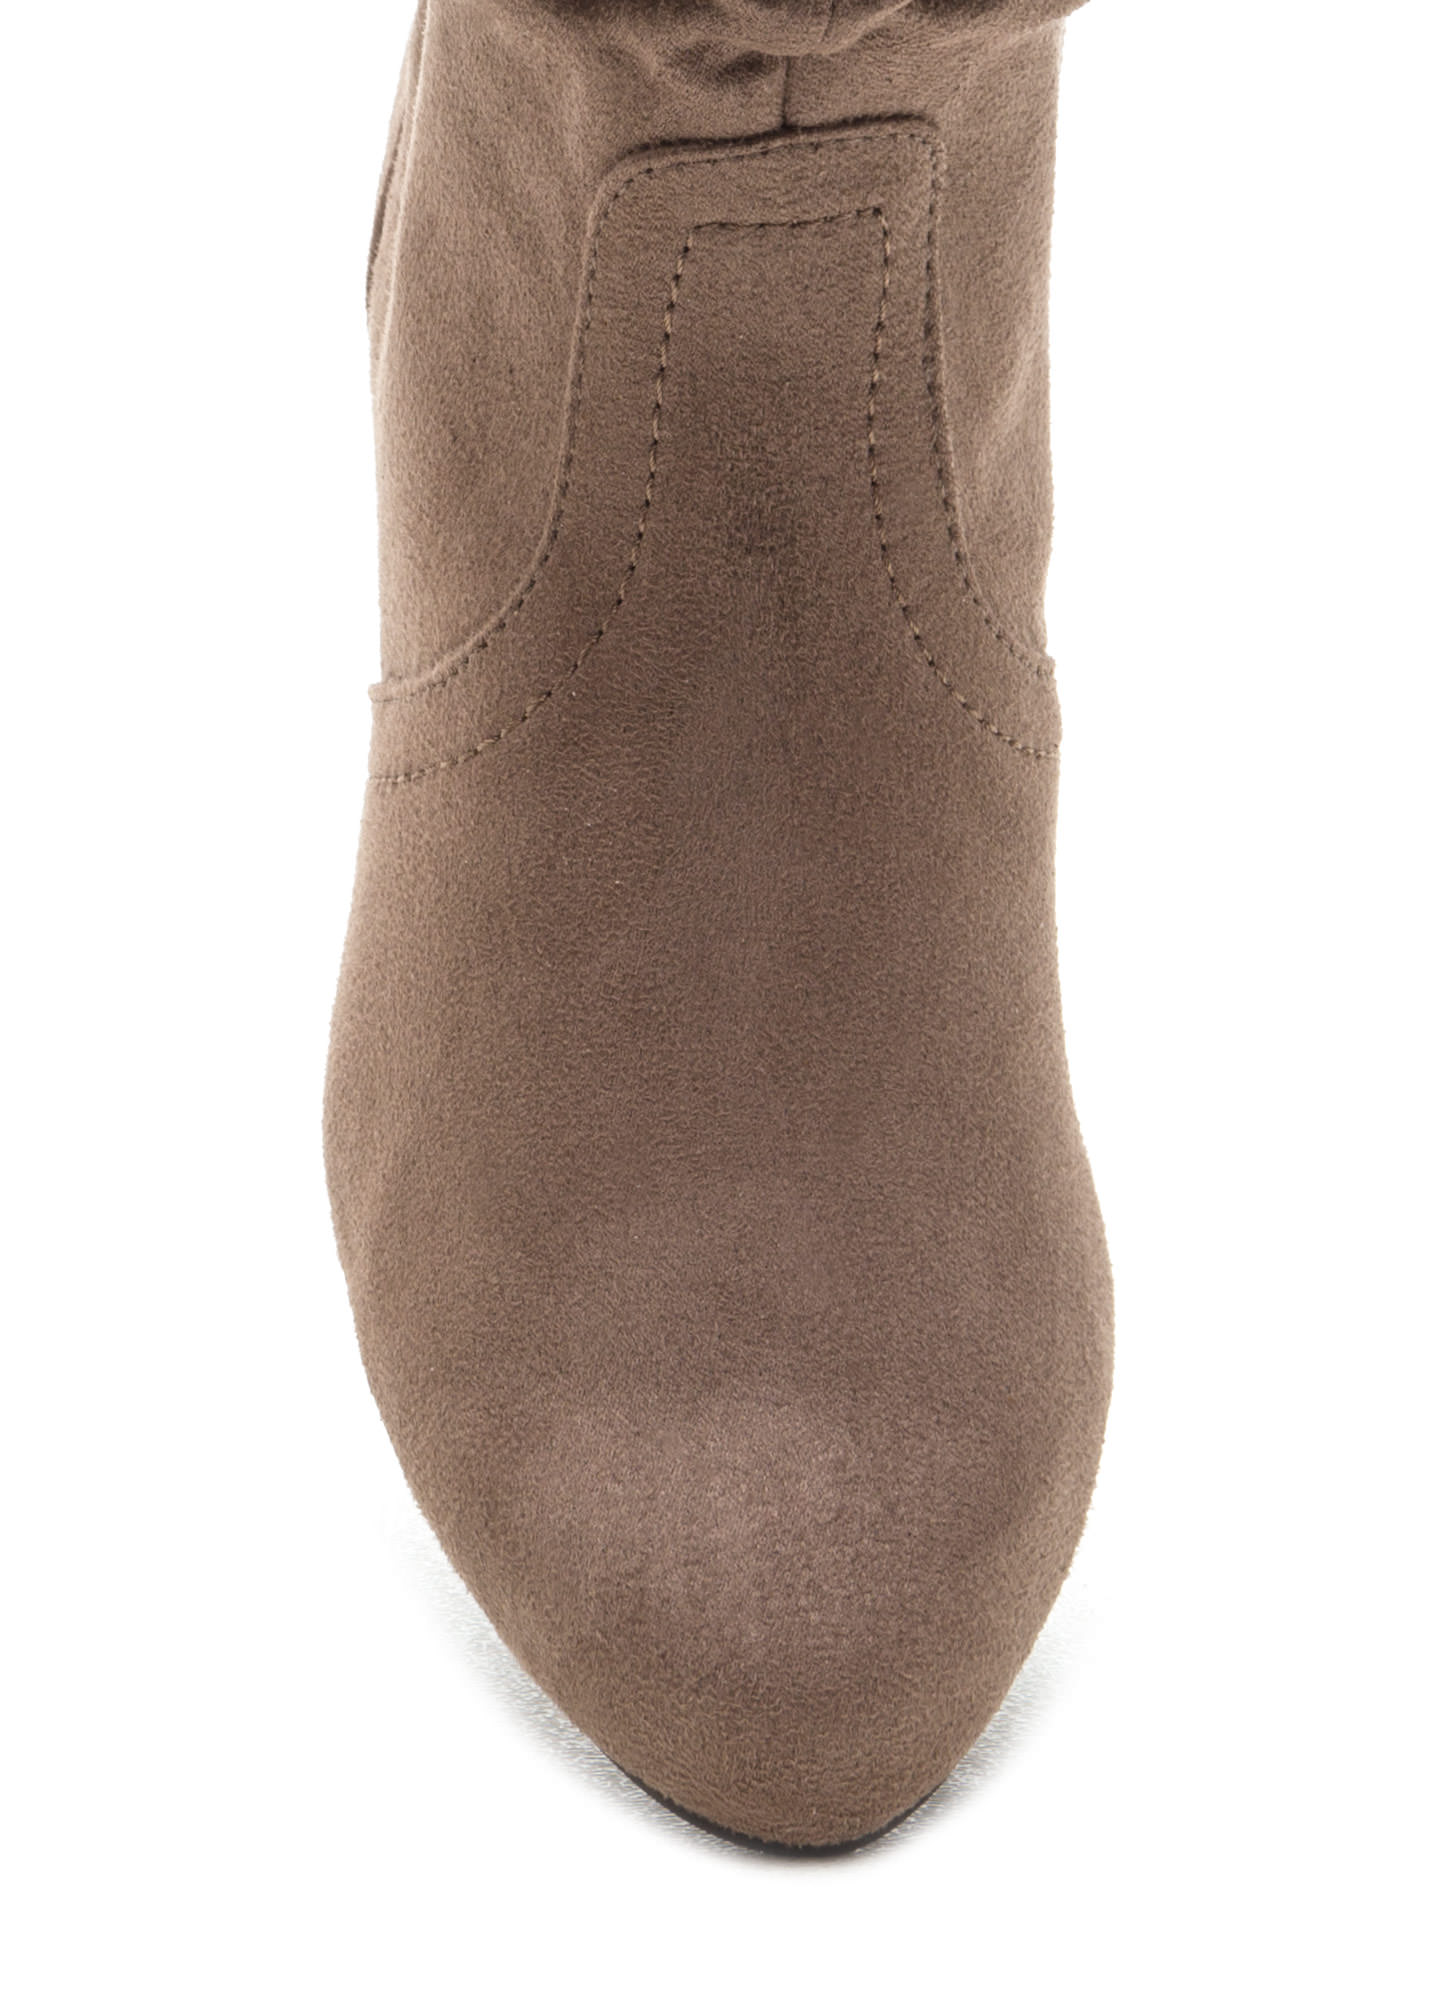 Ditch Day Faux Suede Boots DKTAUPE